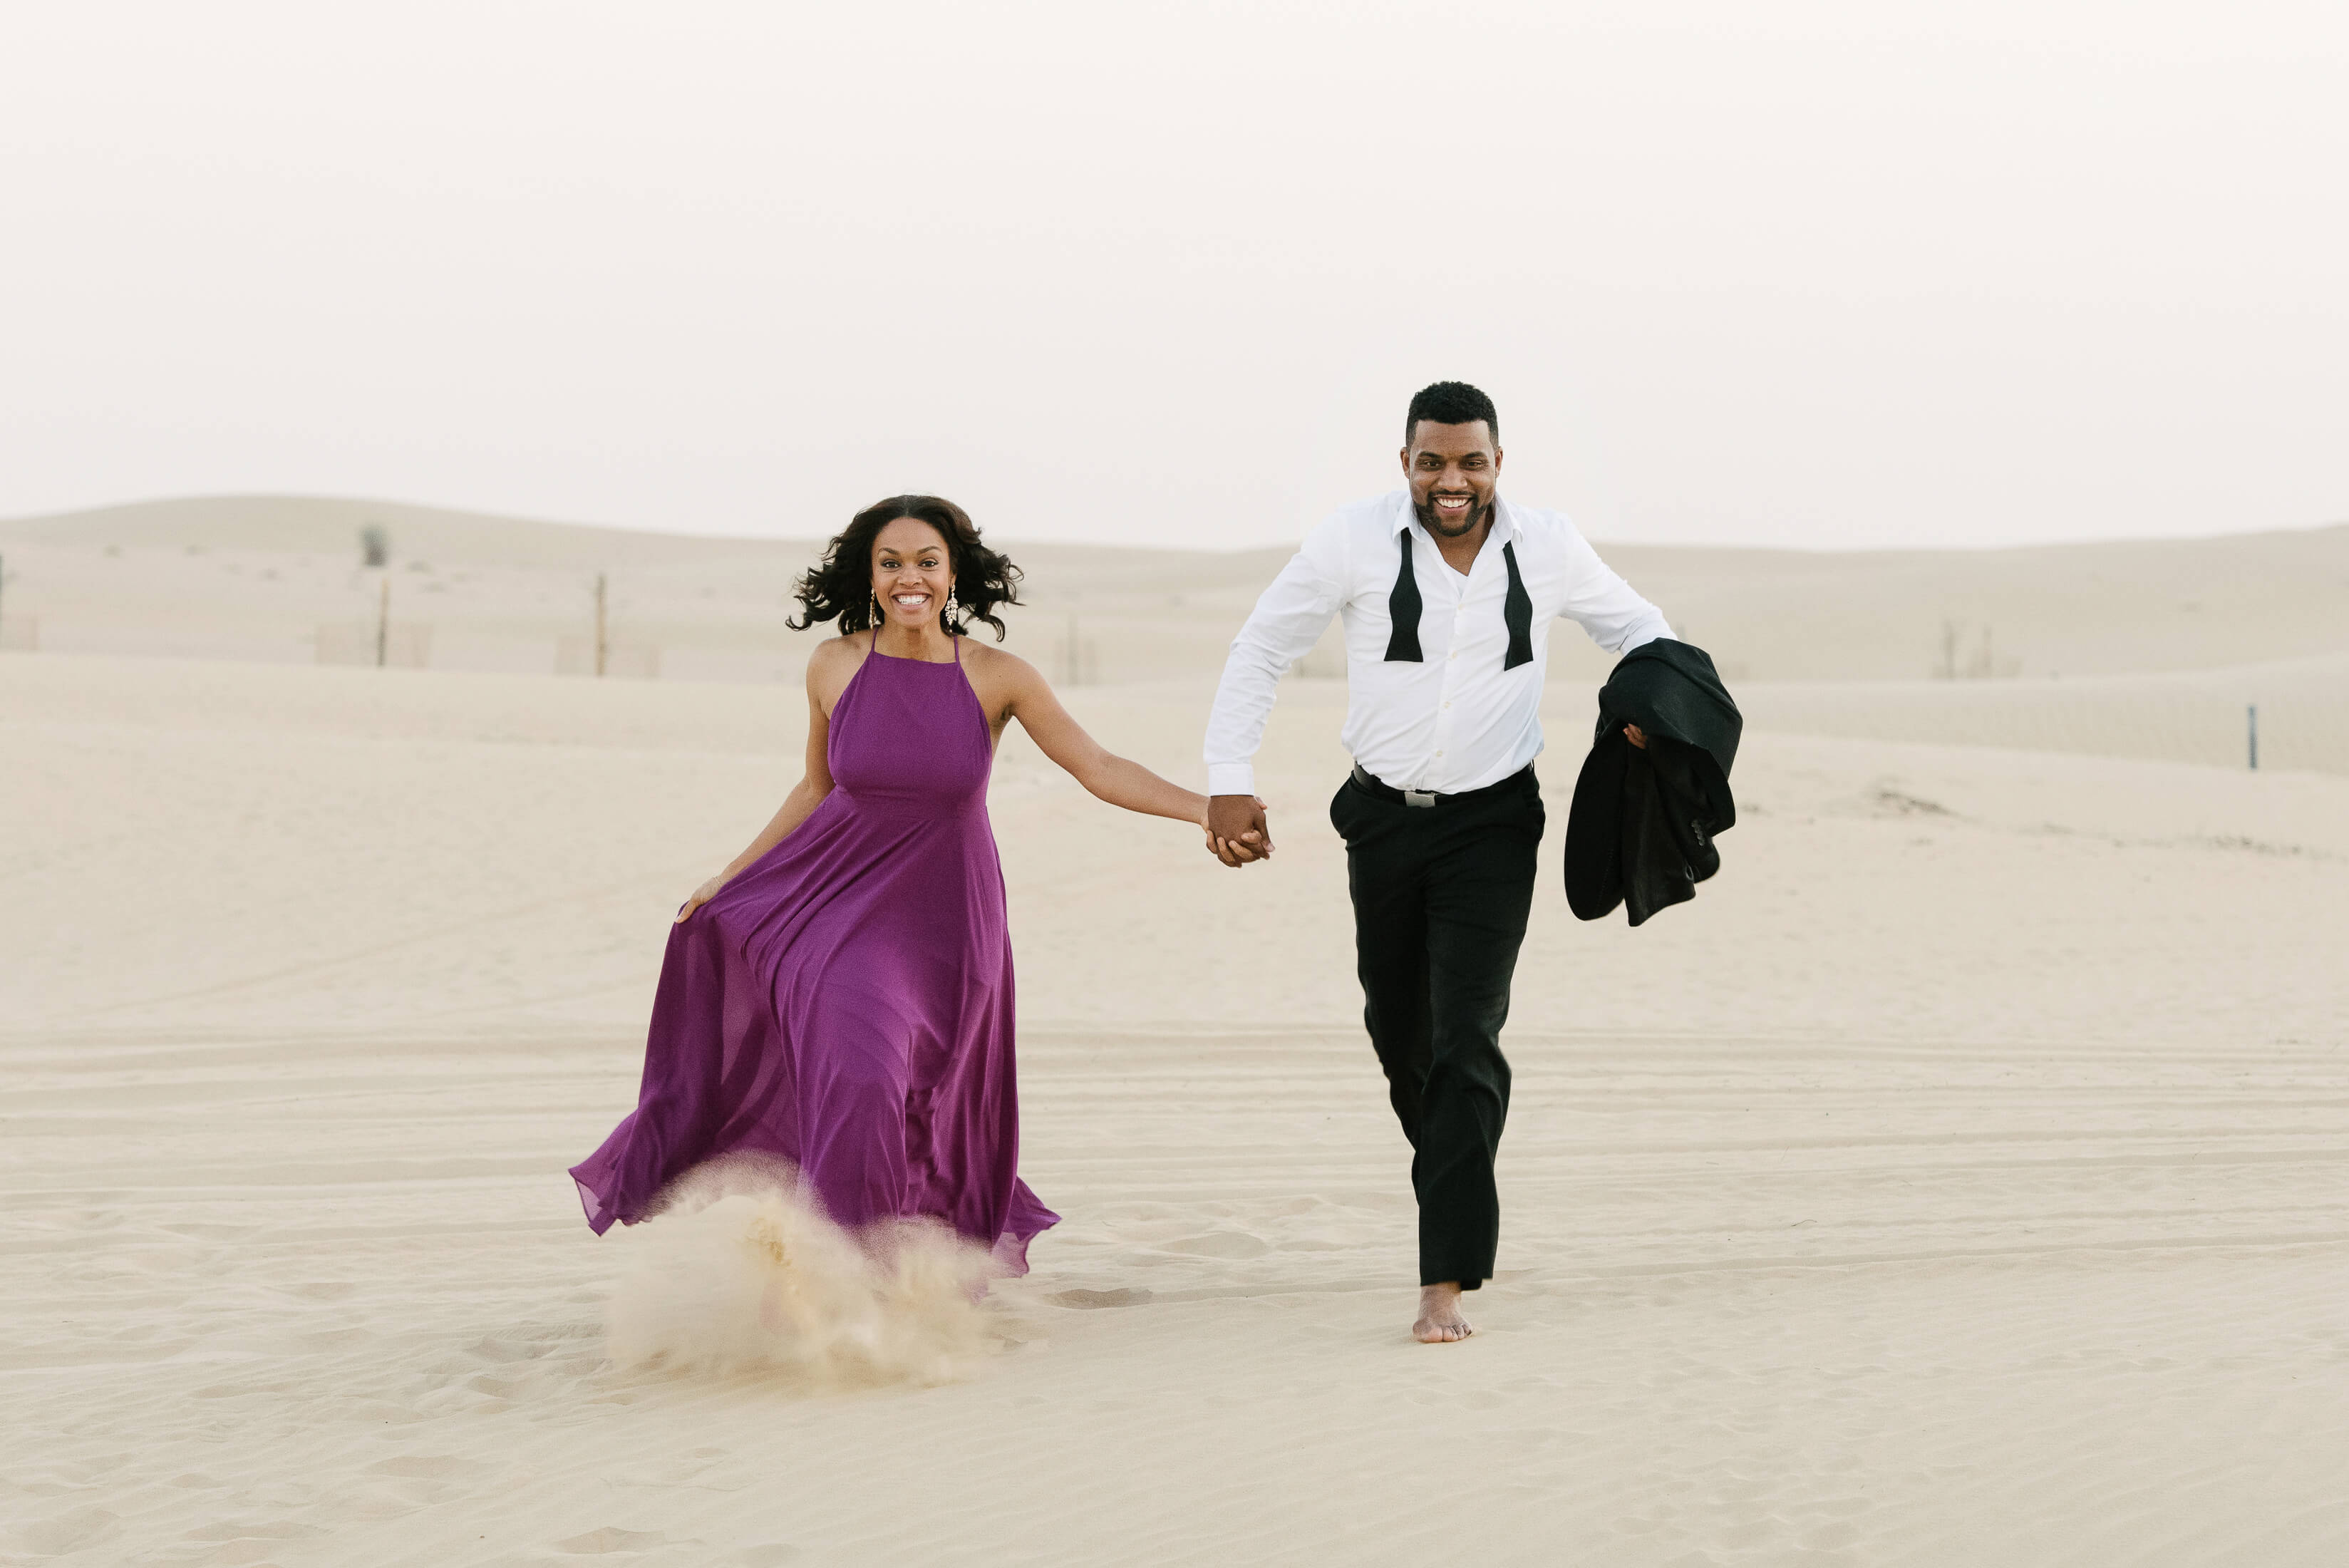 Couple holding hands and running in the desert in Dubai